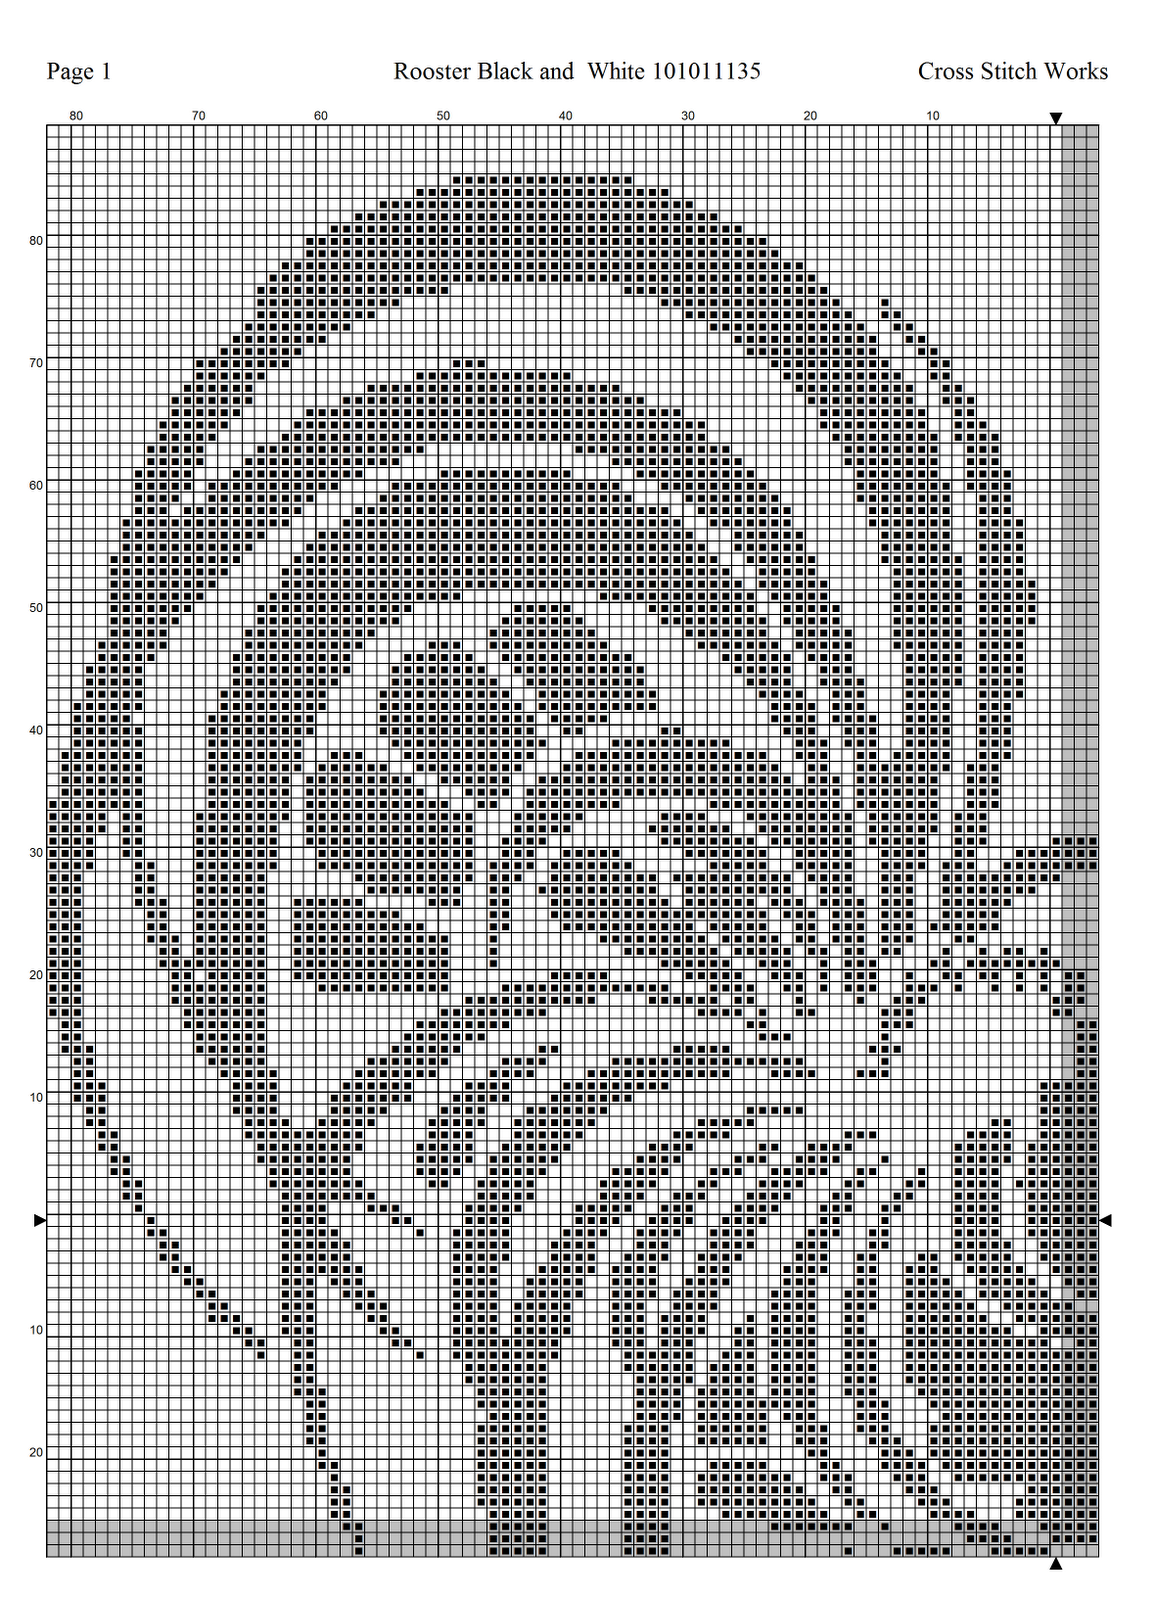 Cross Stitch Works Rooster Black And White 101011135 Free